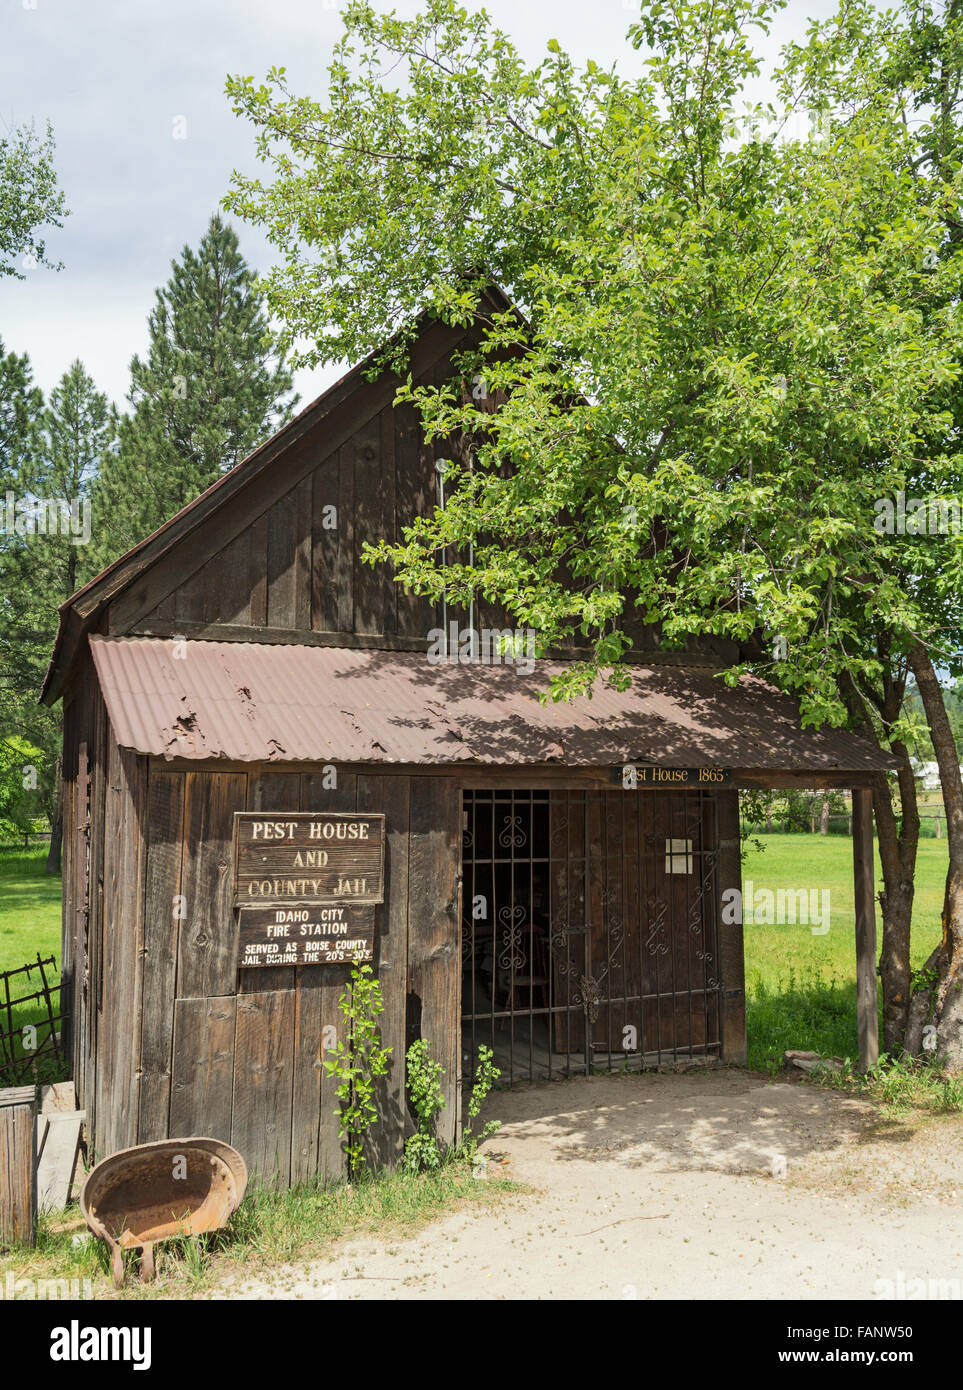 Idaho, Idaho City Historic District, Pest House, from pestilence, housed indigent citizens with contagious diseases - Stock Image